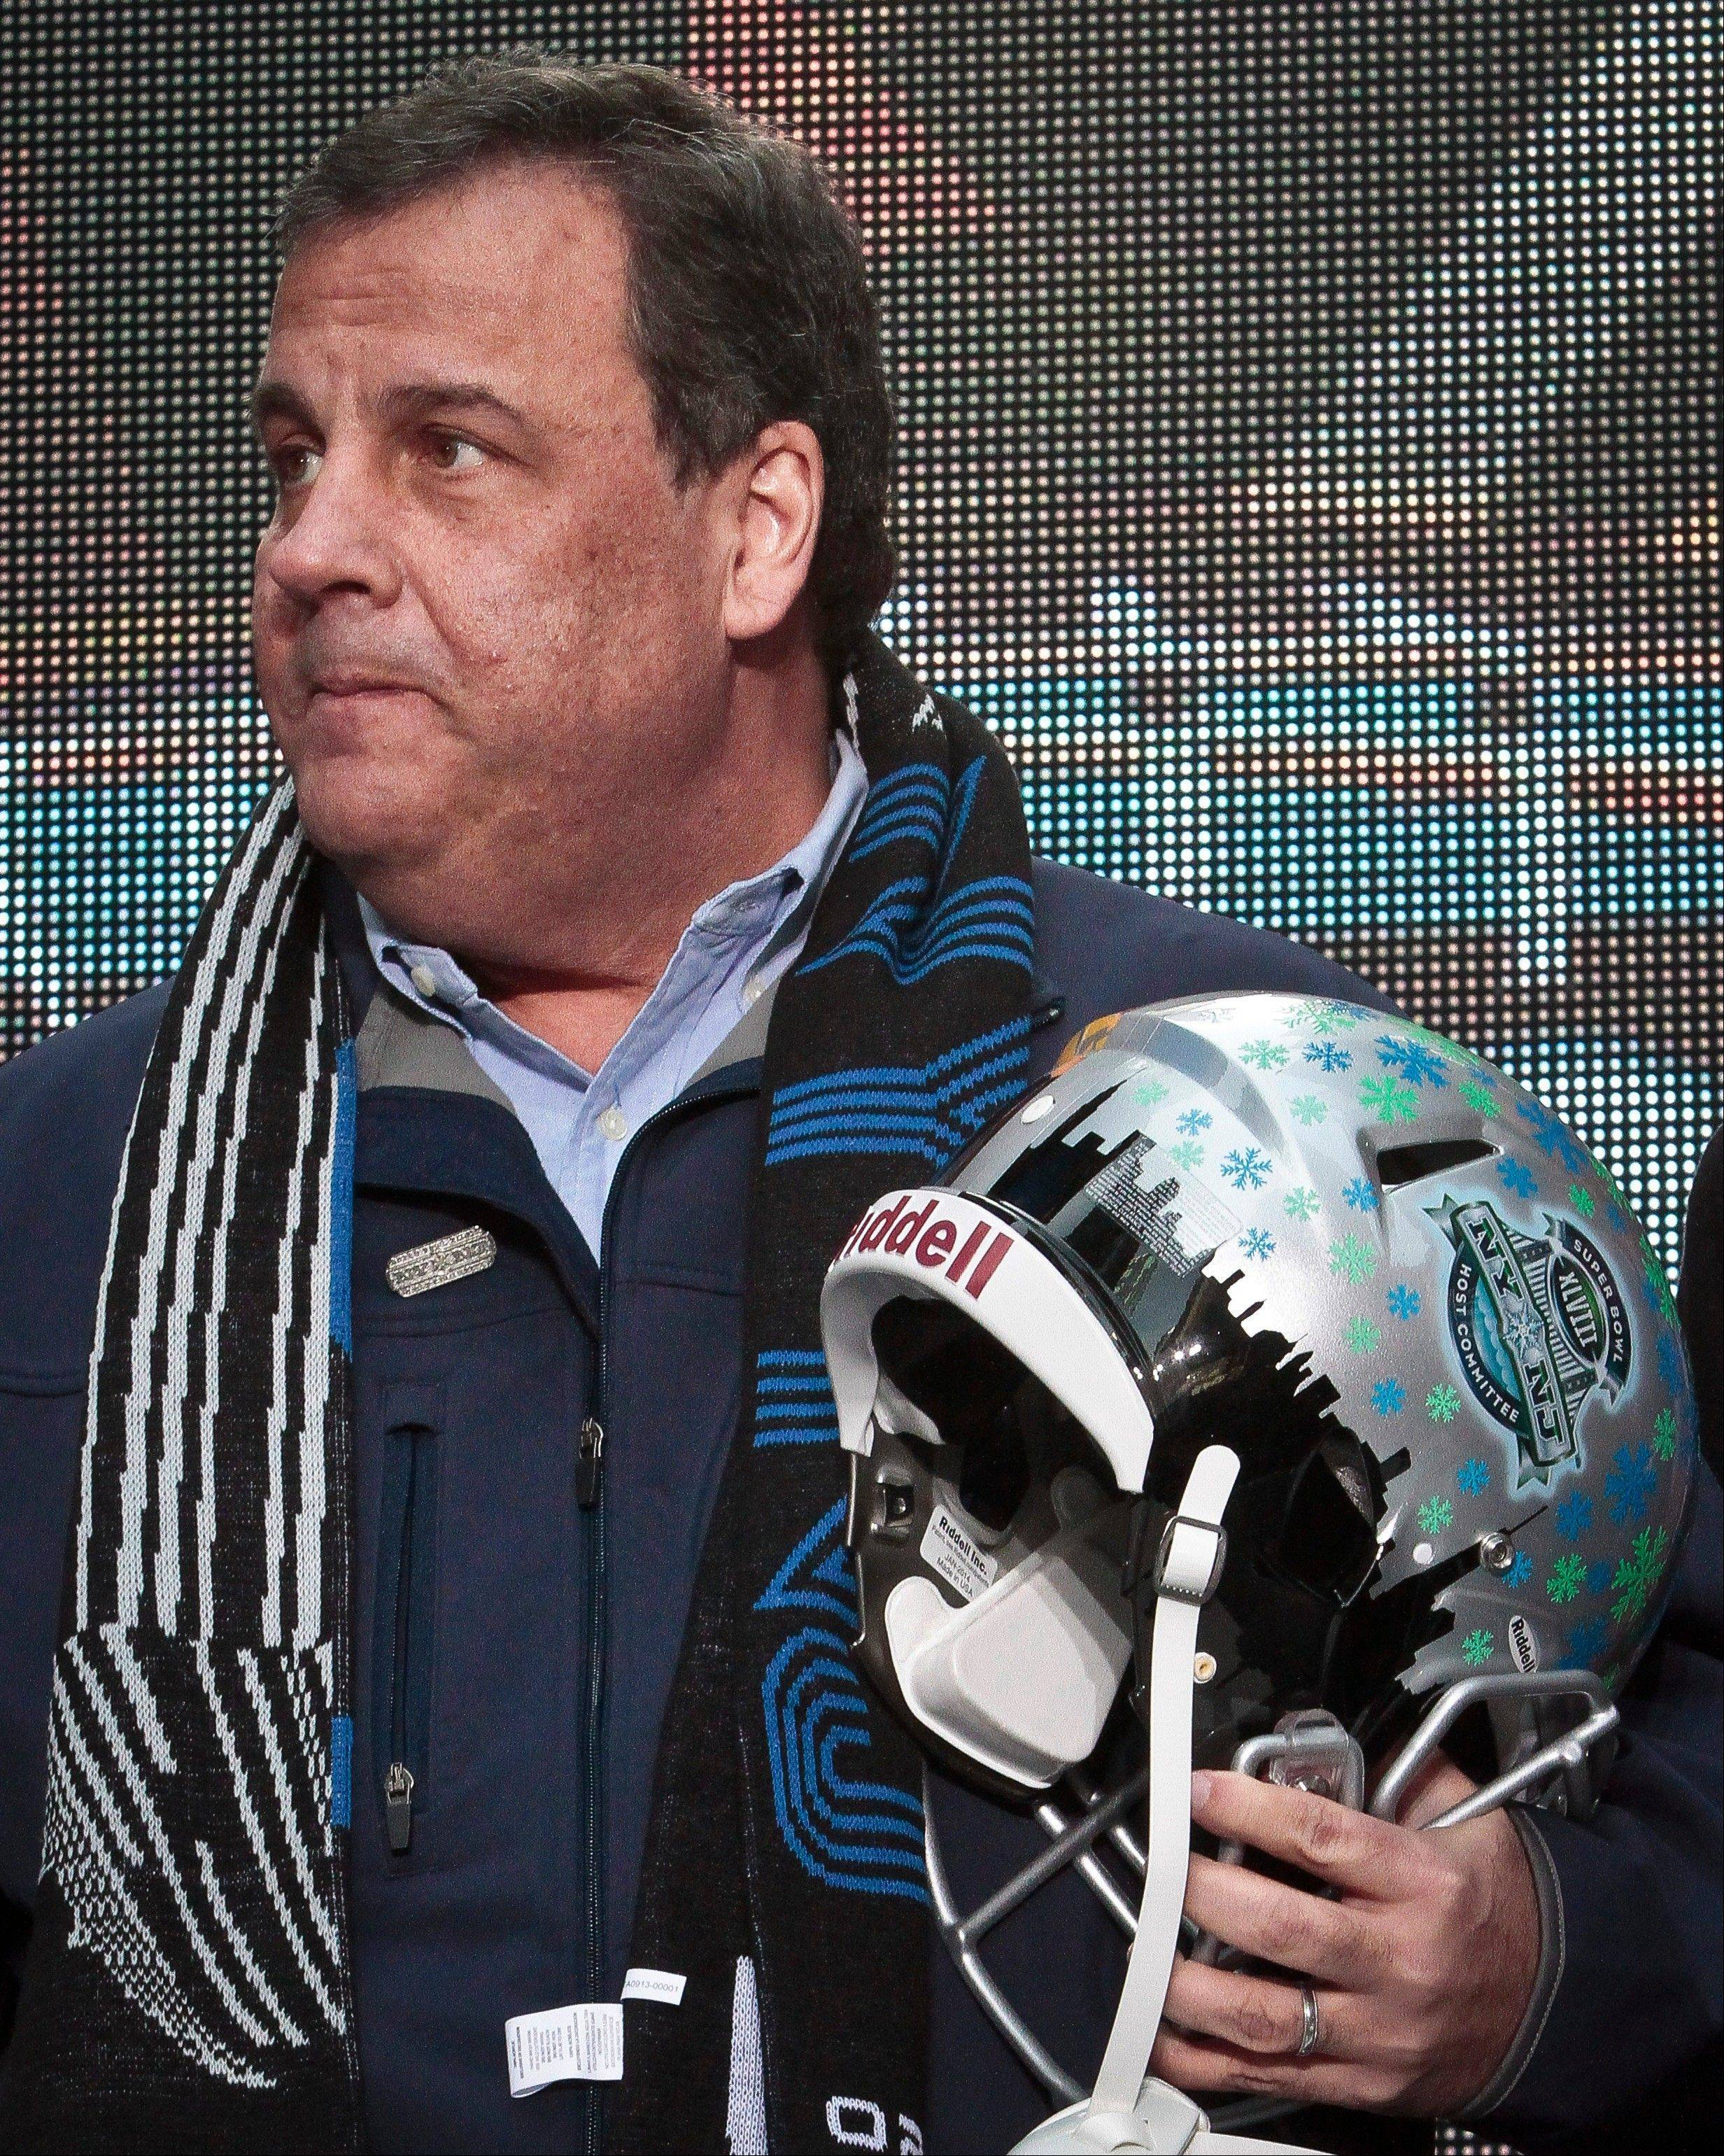 New Jersey Gov. Chris Christie holds a souvenir football helmet Saturday as he leaves after a ceremony to pass official hosting duties of next year�s Super Bowl to representatives from Arizona.